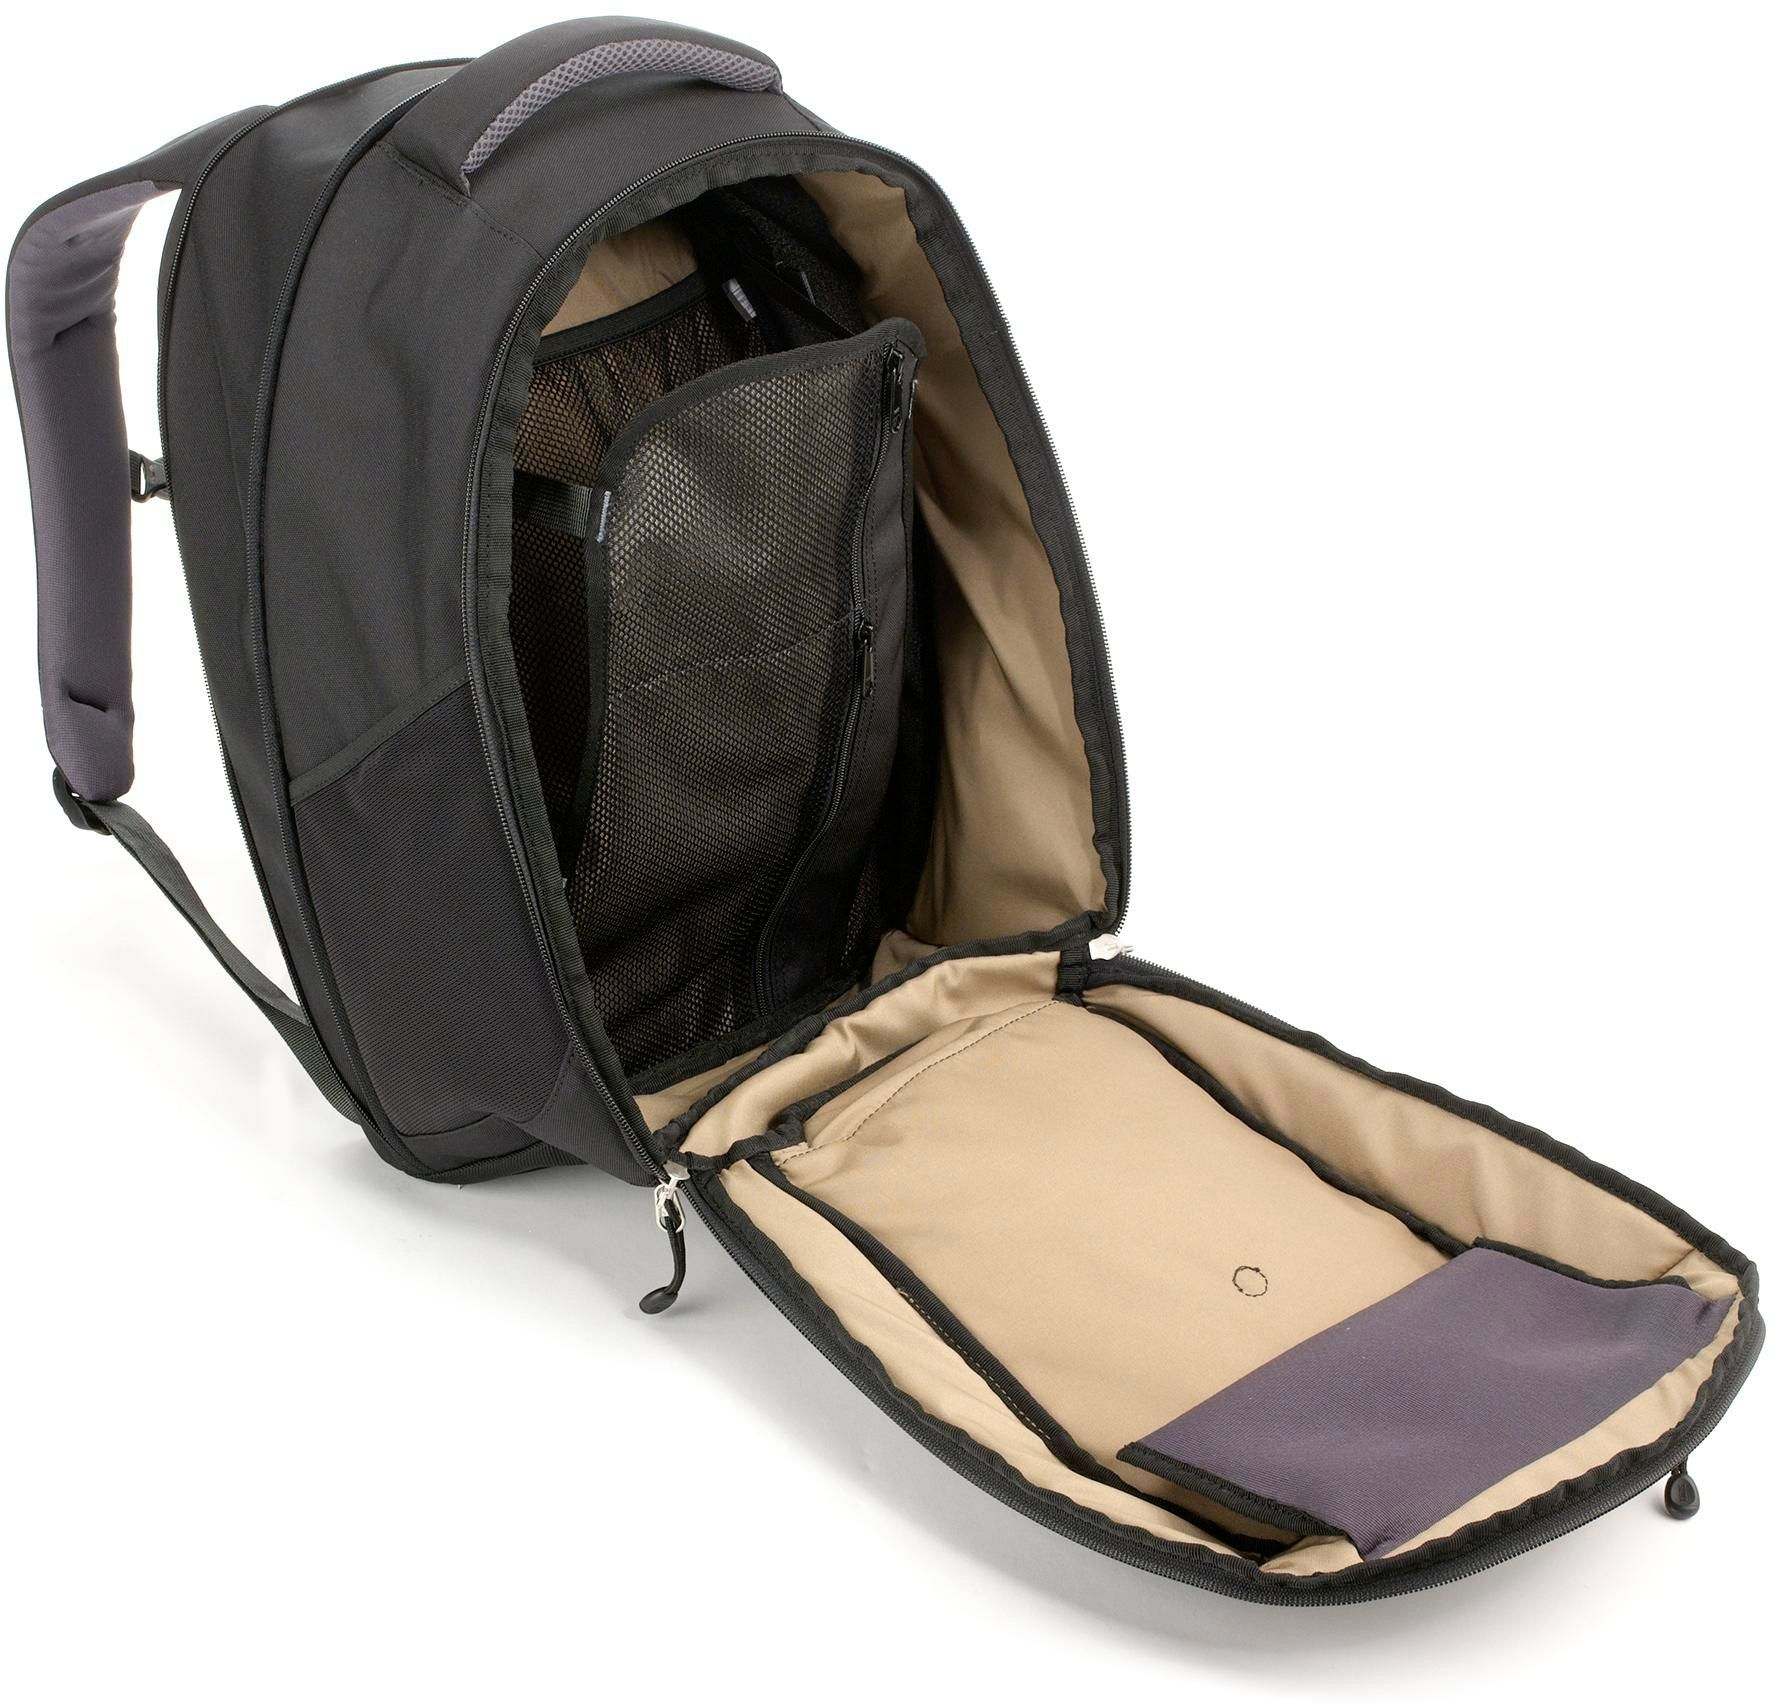 e81d1c0e086e REI Urban Overnighter Pack - Special Buy - Free Shipping at REI-OUTLET.com